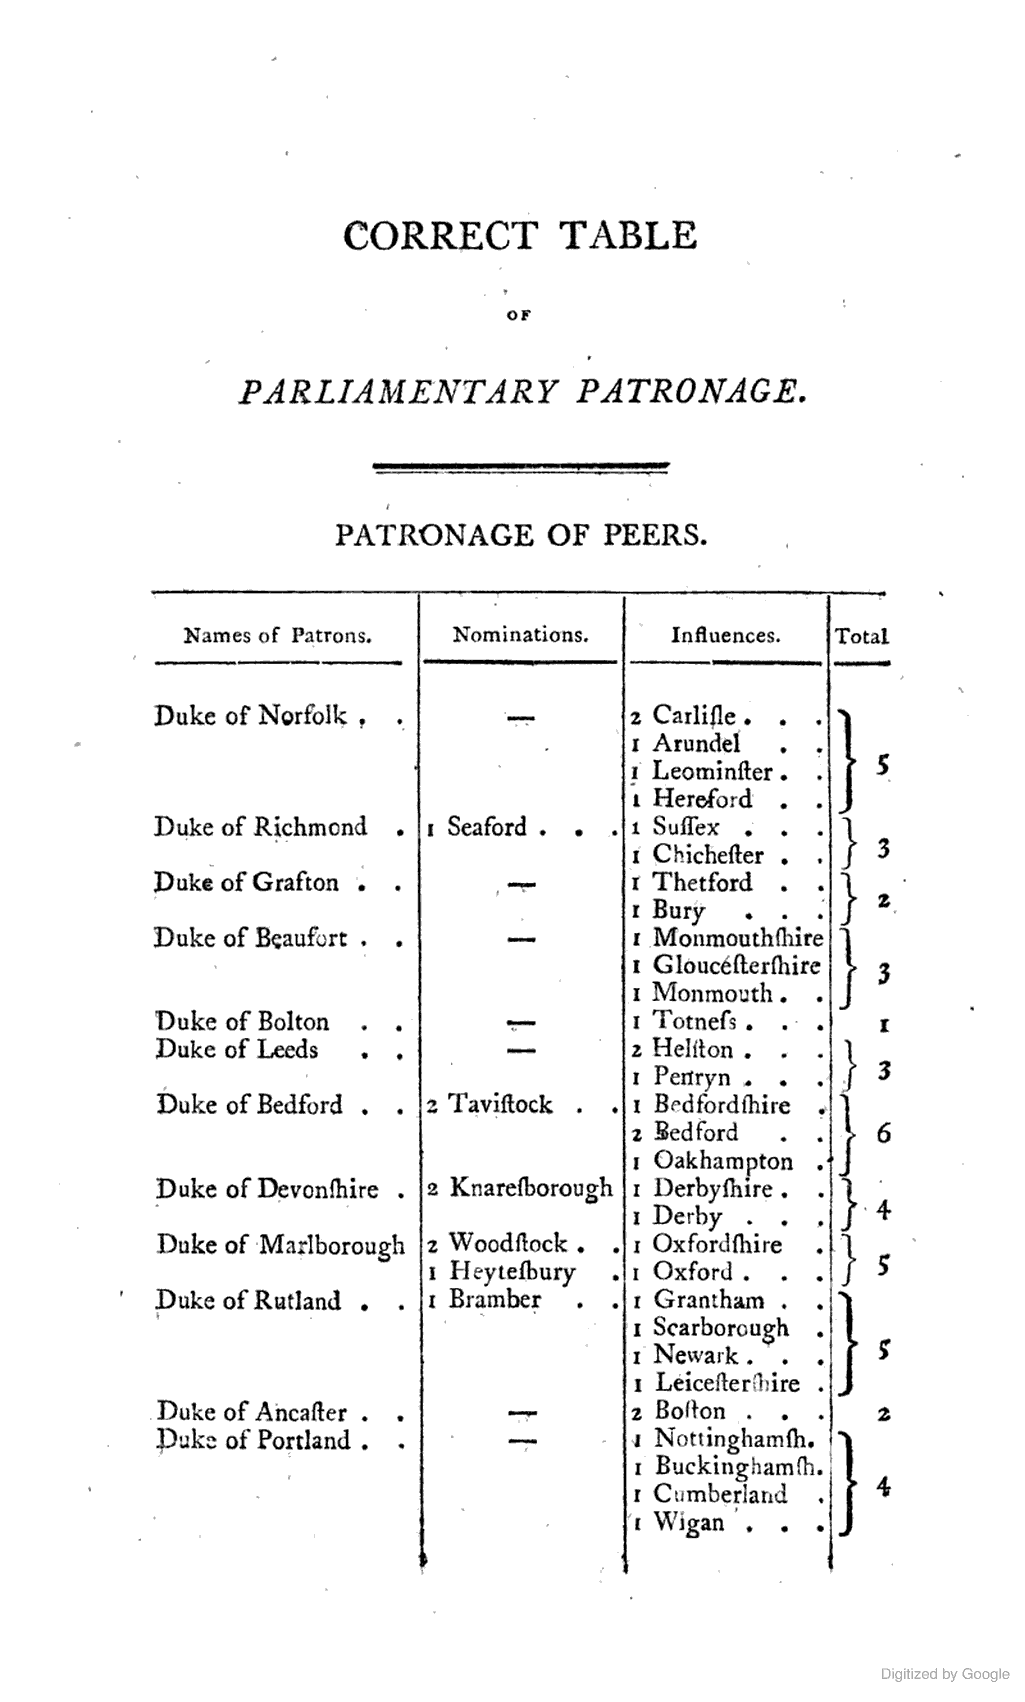 An Entire and Complete History, political and personal, of the boroughs of Great Britain (together with the Cinque Ports); to which is prefixed, An original sketch of constitutional rights, etc. By T. H. B. Oldfield. Correct Table of Parliamentary Patronage of Peers 1805